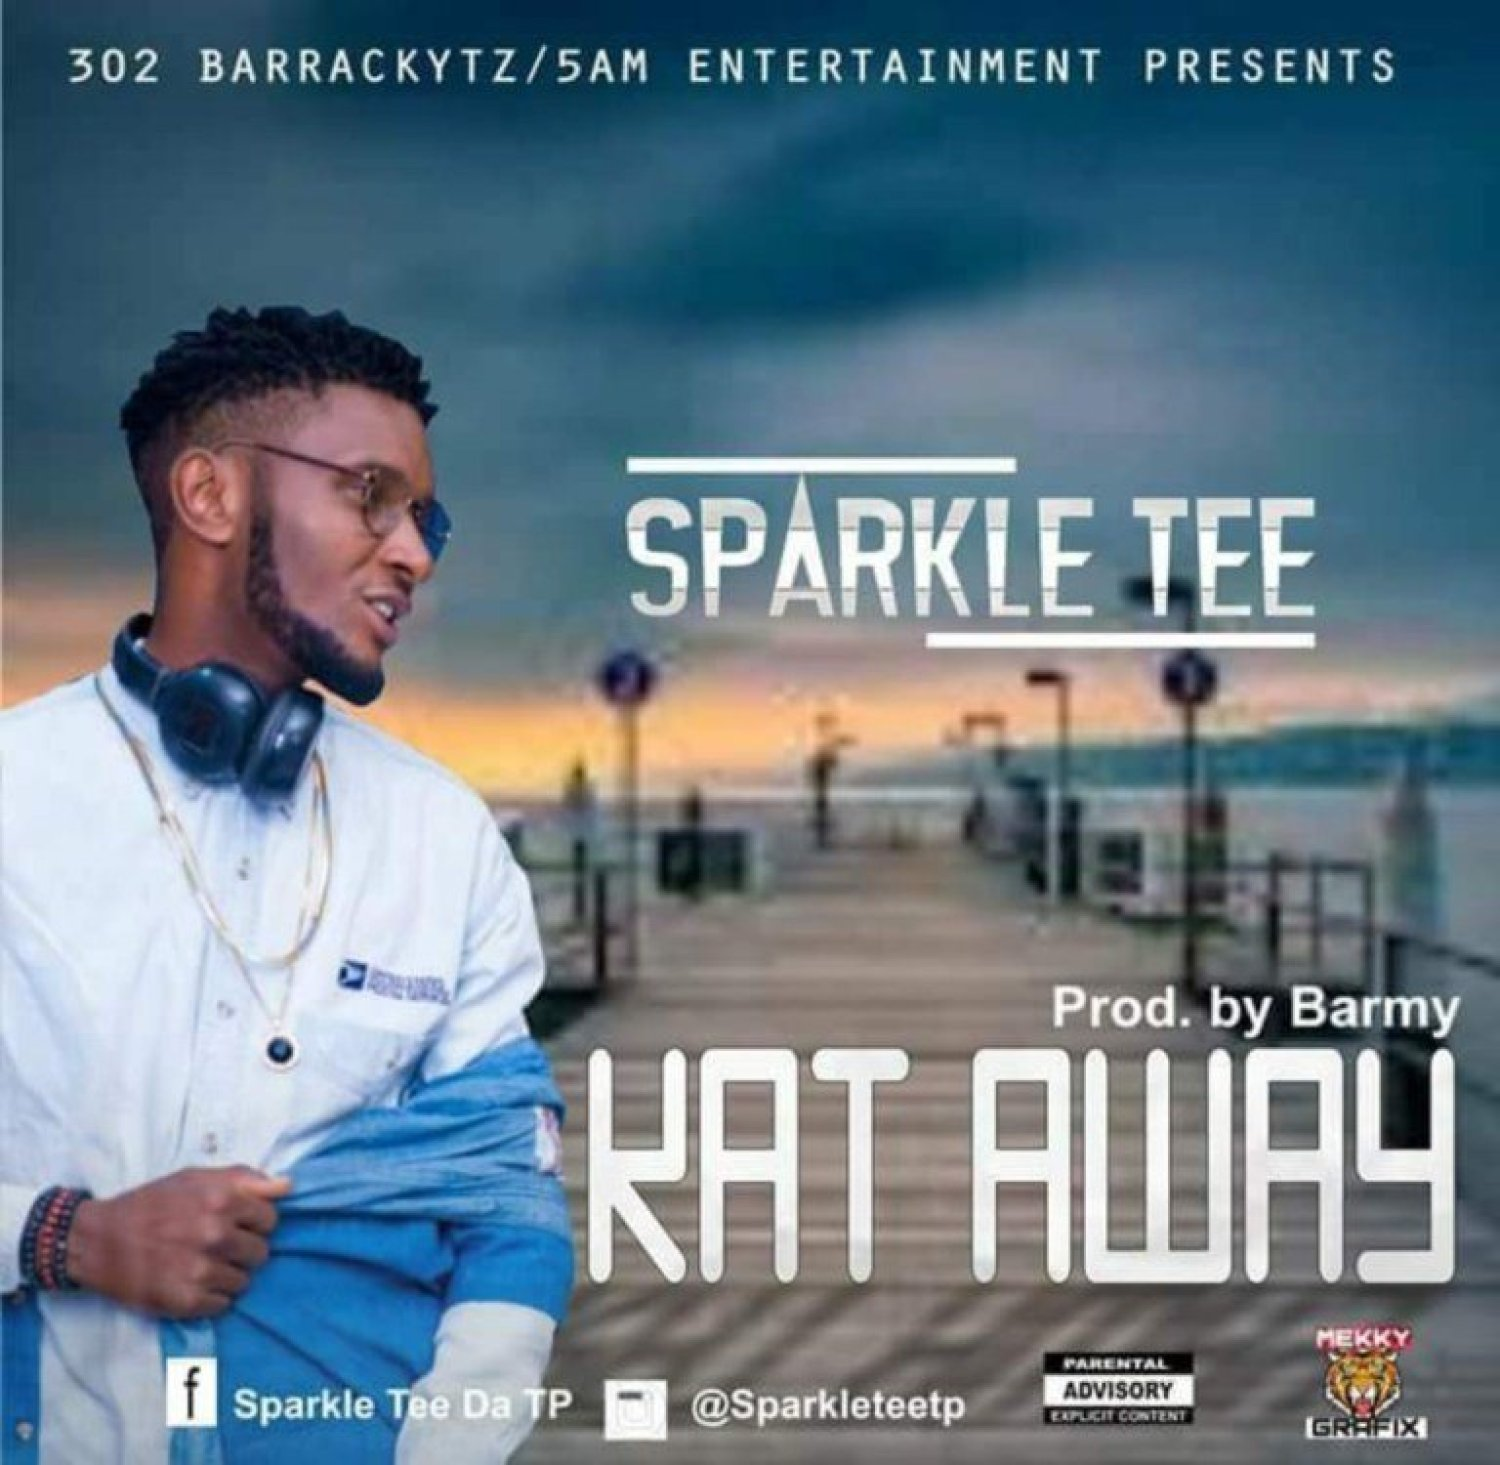 DOWNLOAD MP3: Sparkle Tee – KataWay (Free Mp3) AUDIO 320kbps